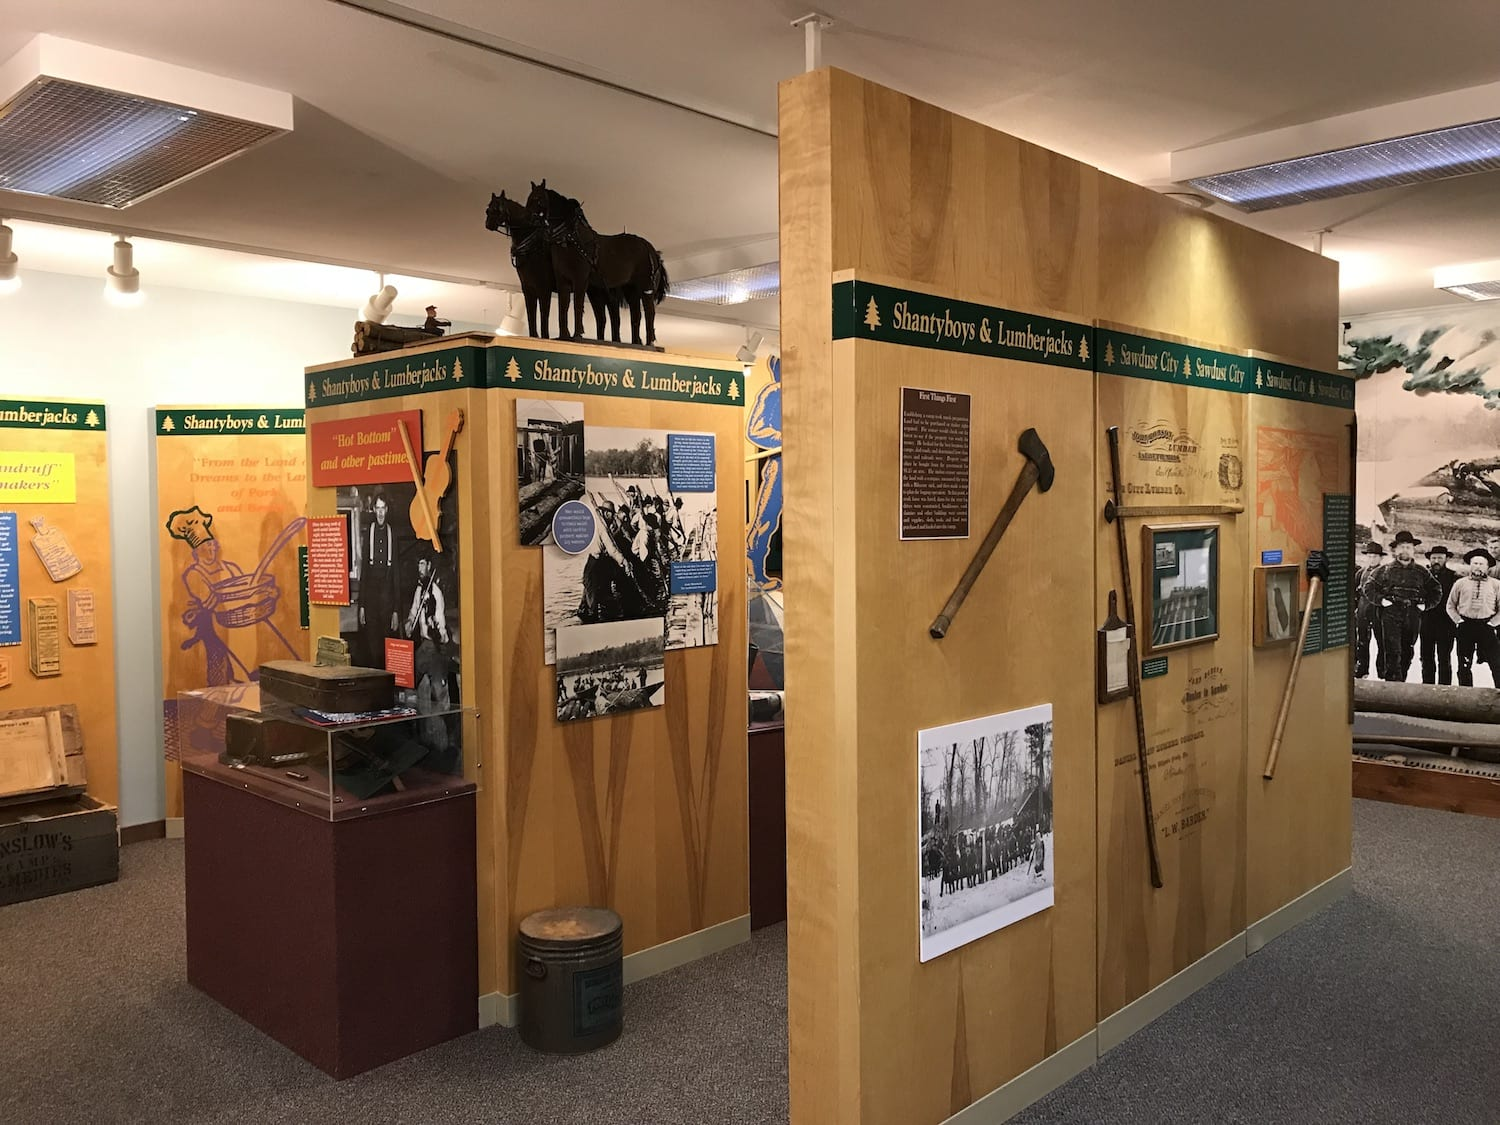 Exhibits at Paul Bunyan Logging Camp Museum